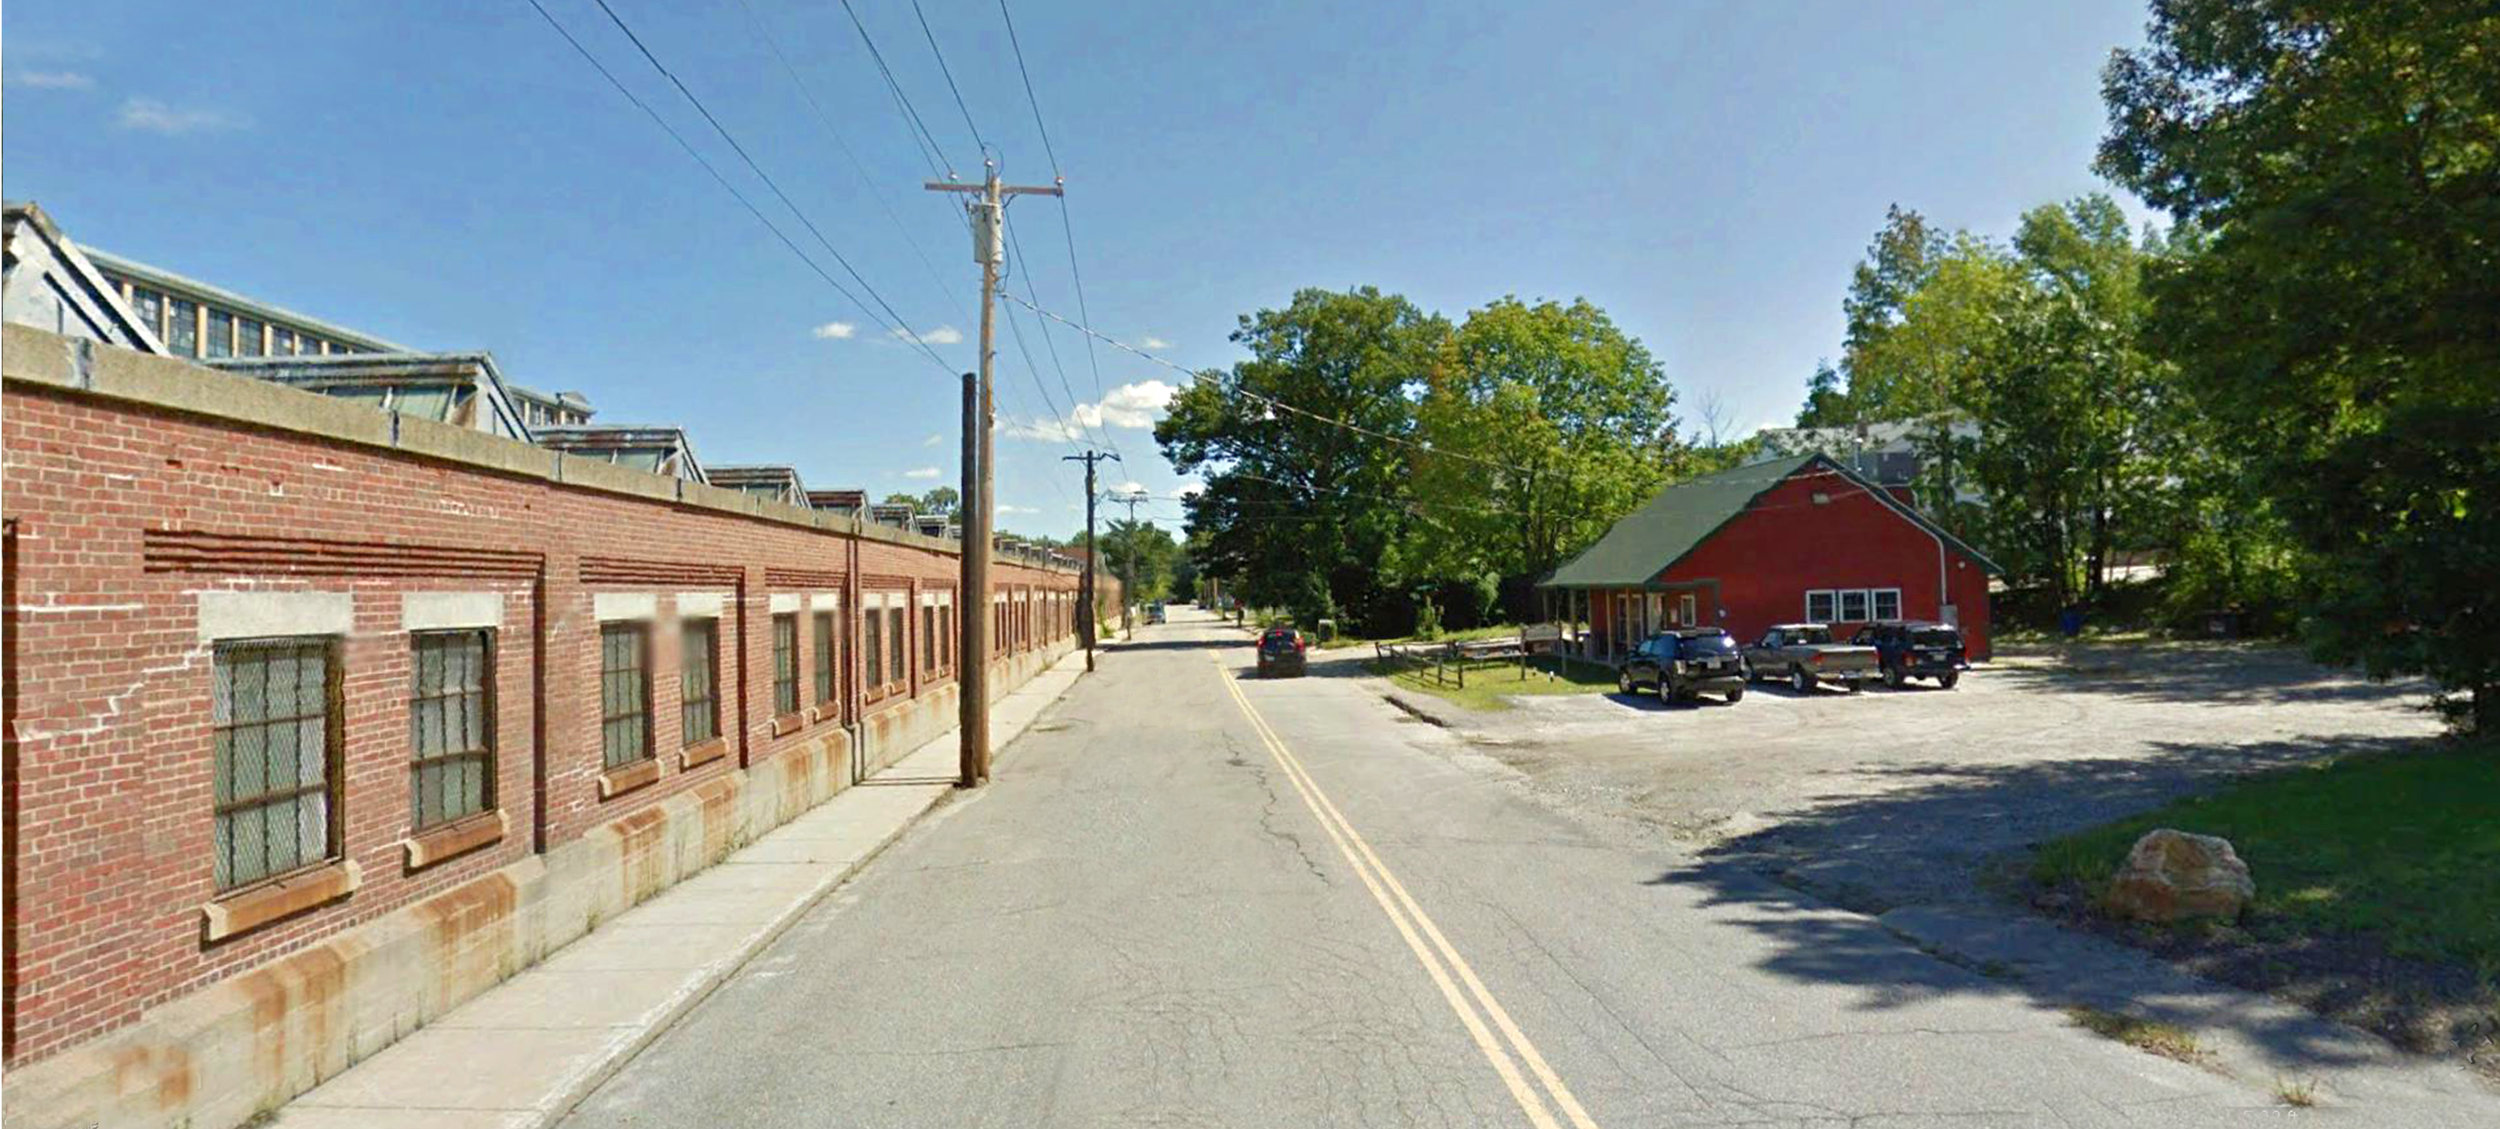 25 ALA - SANFORD Pioneer Ave Mill Streetscape Existing.jpg